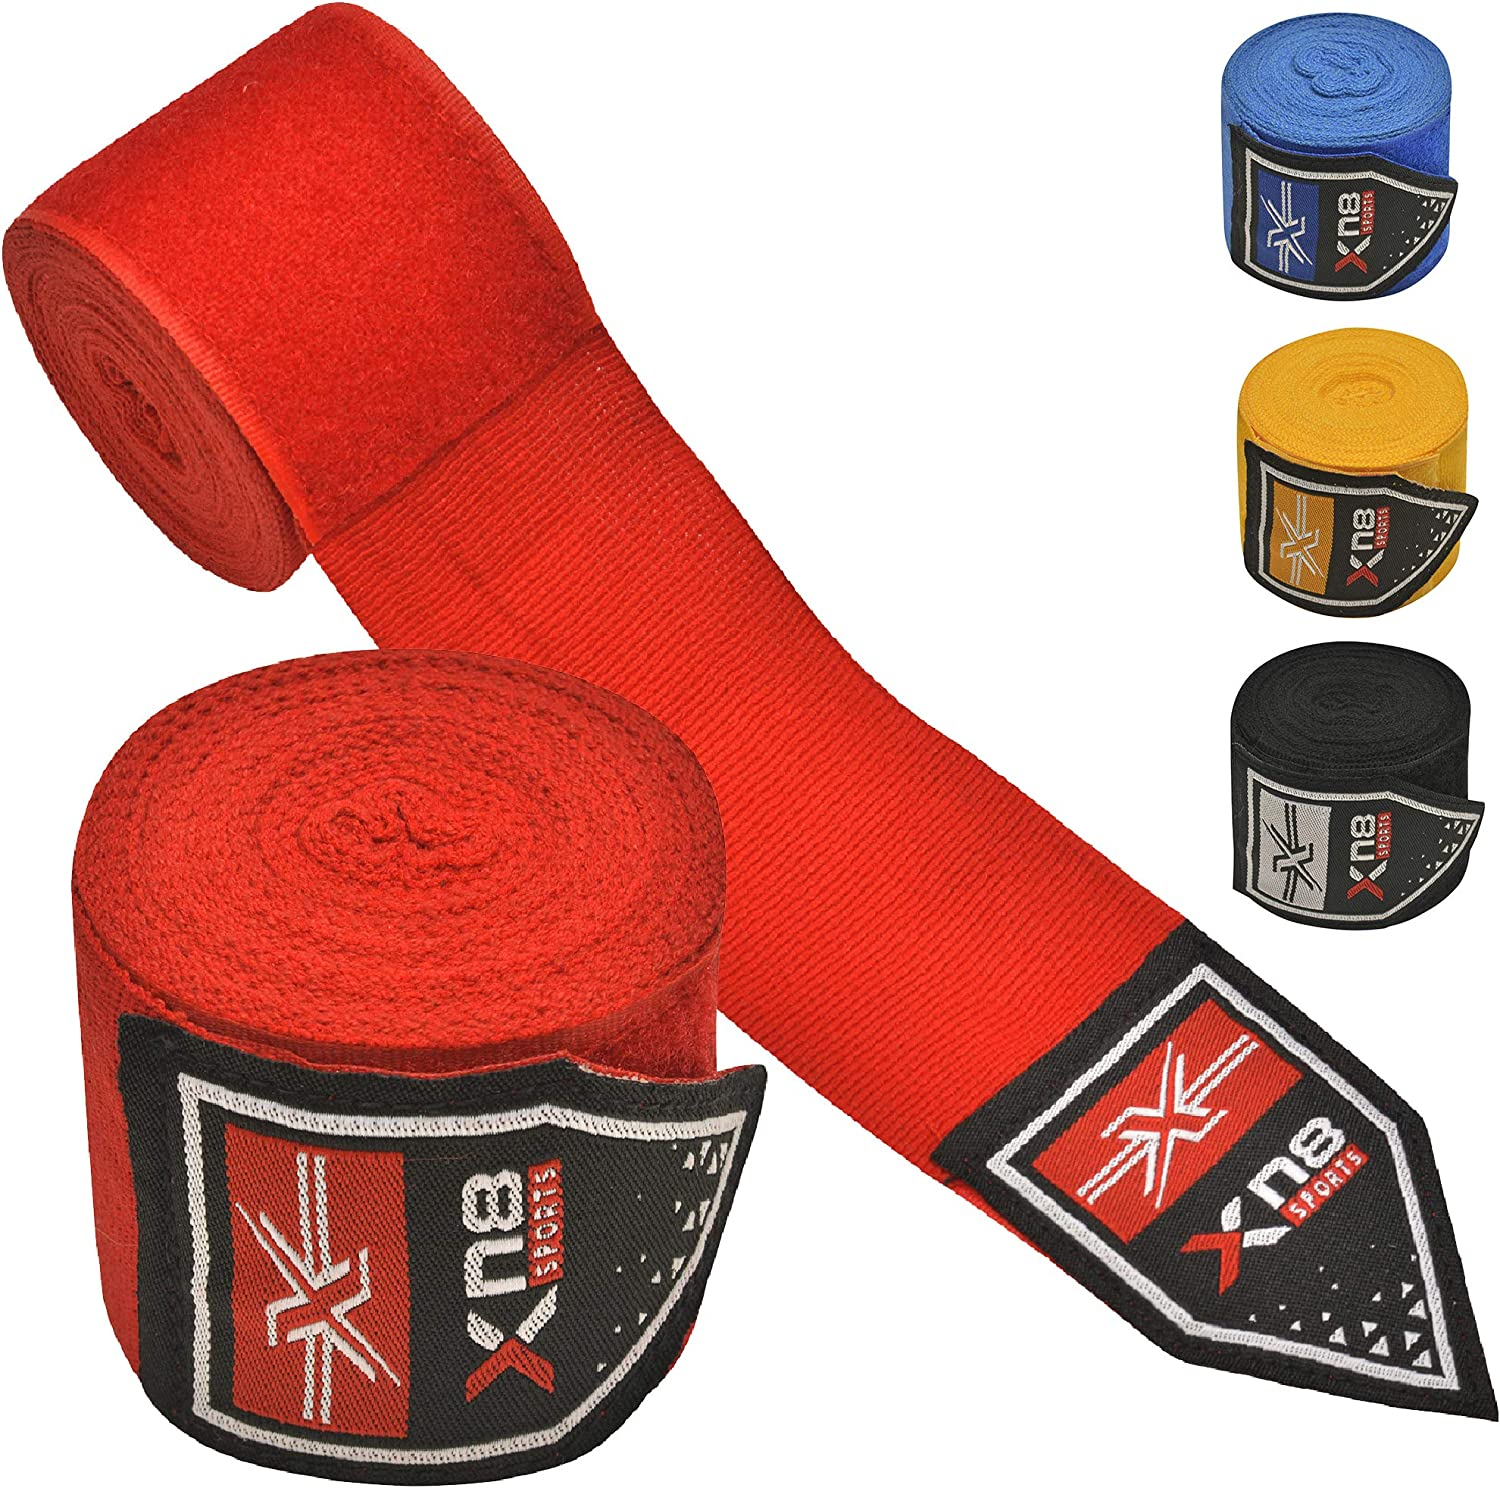 4.5 Meter Elasticated Bandages under Mitts Martial Arts Training Combat Sports Ideal for MMA Kickboxing Inner Gloves Bandages for Punching XN8 Boxing Hand Wraps Muay Thai